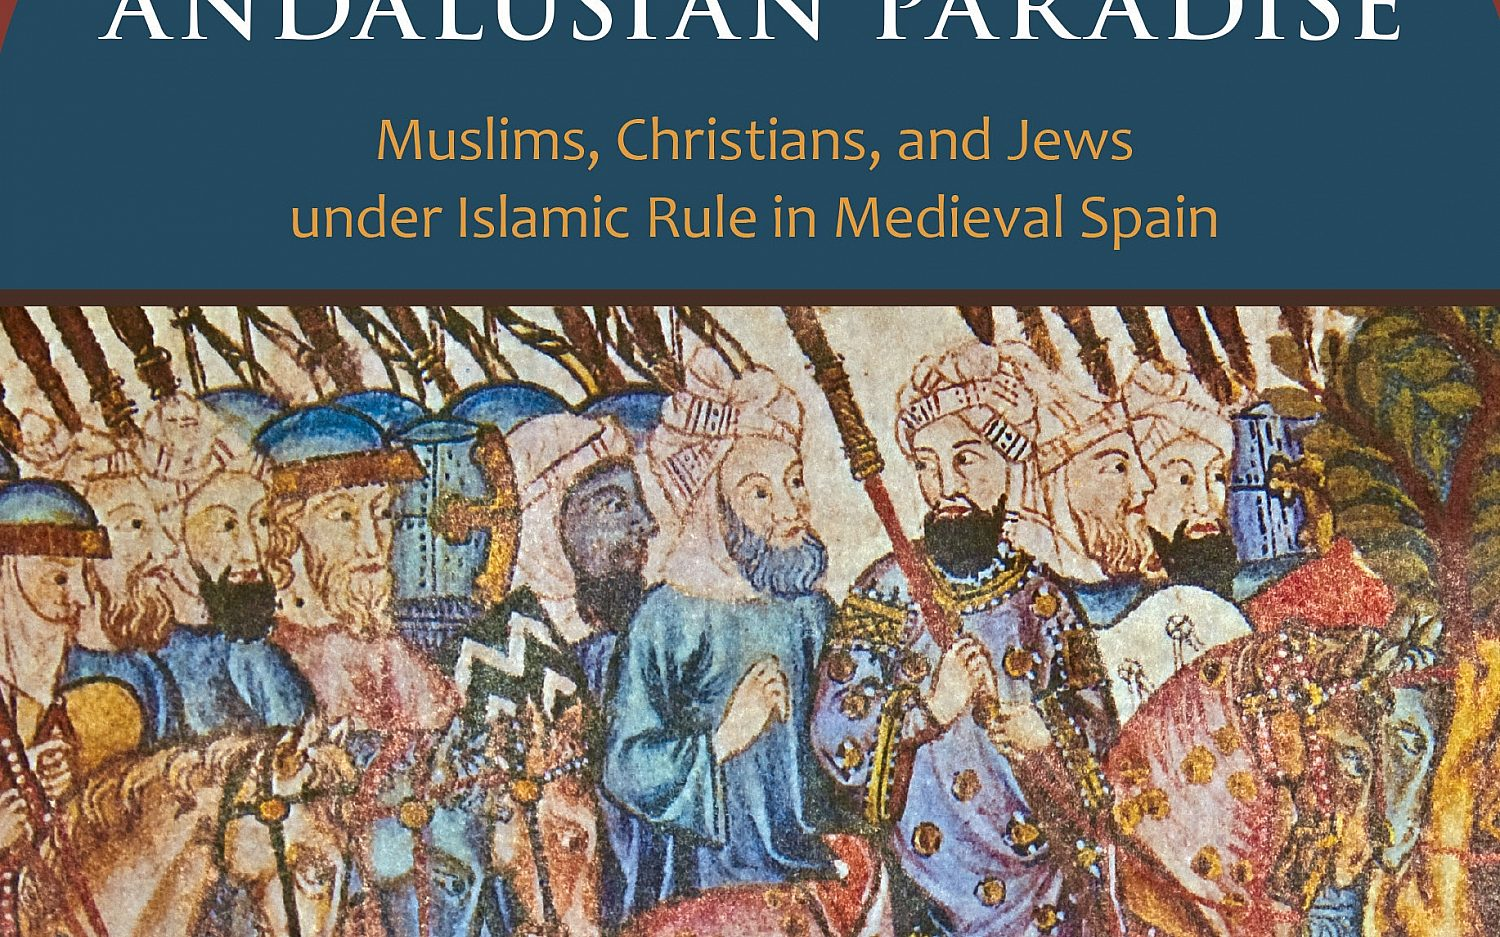 Life as a dhimmi in medieval Islamic Spain